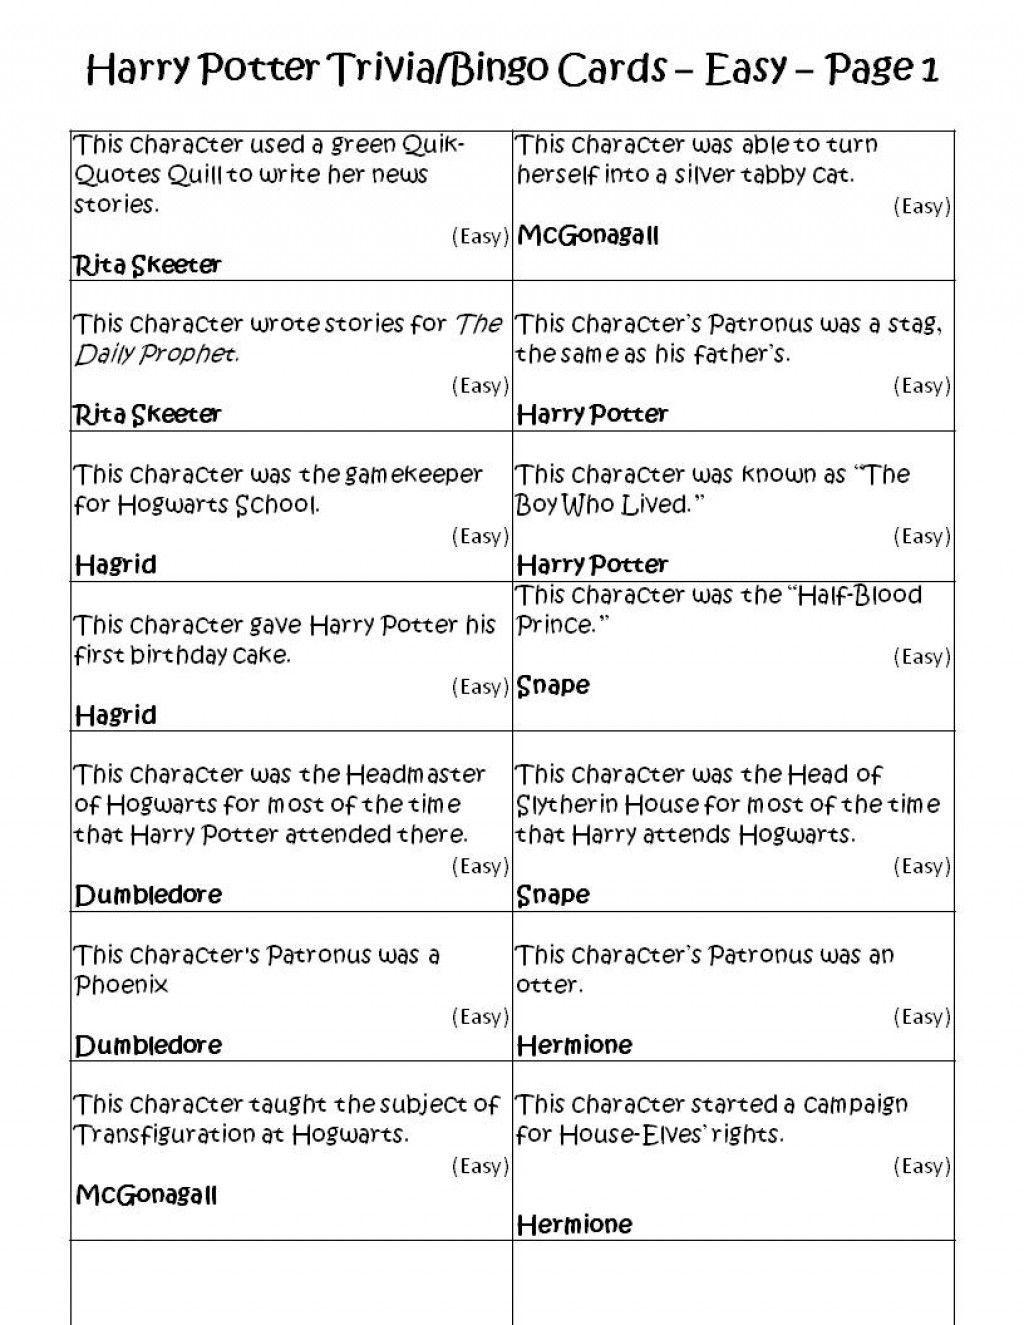 Harry Potter Trivia Bingo Game Cards Easy Page 1